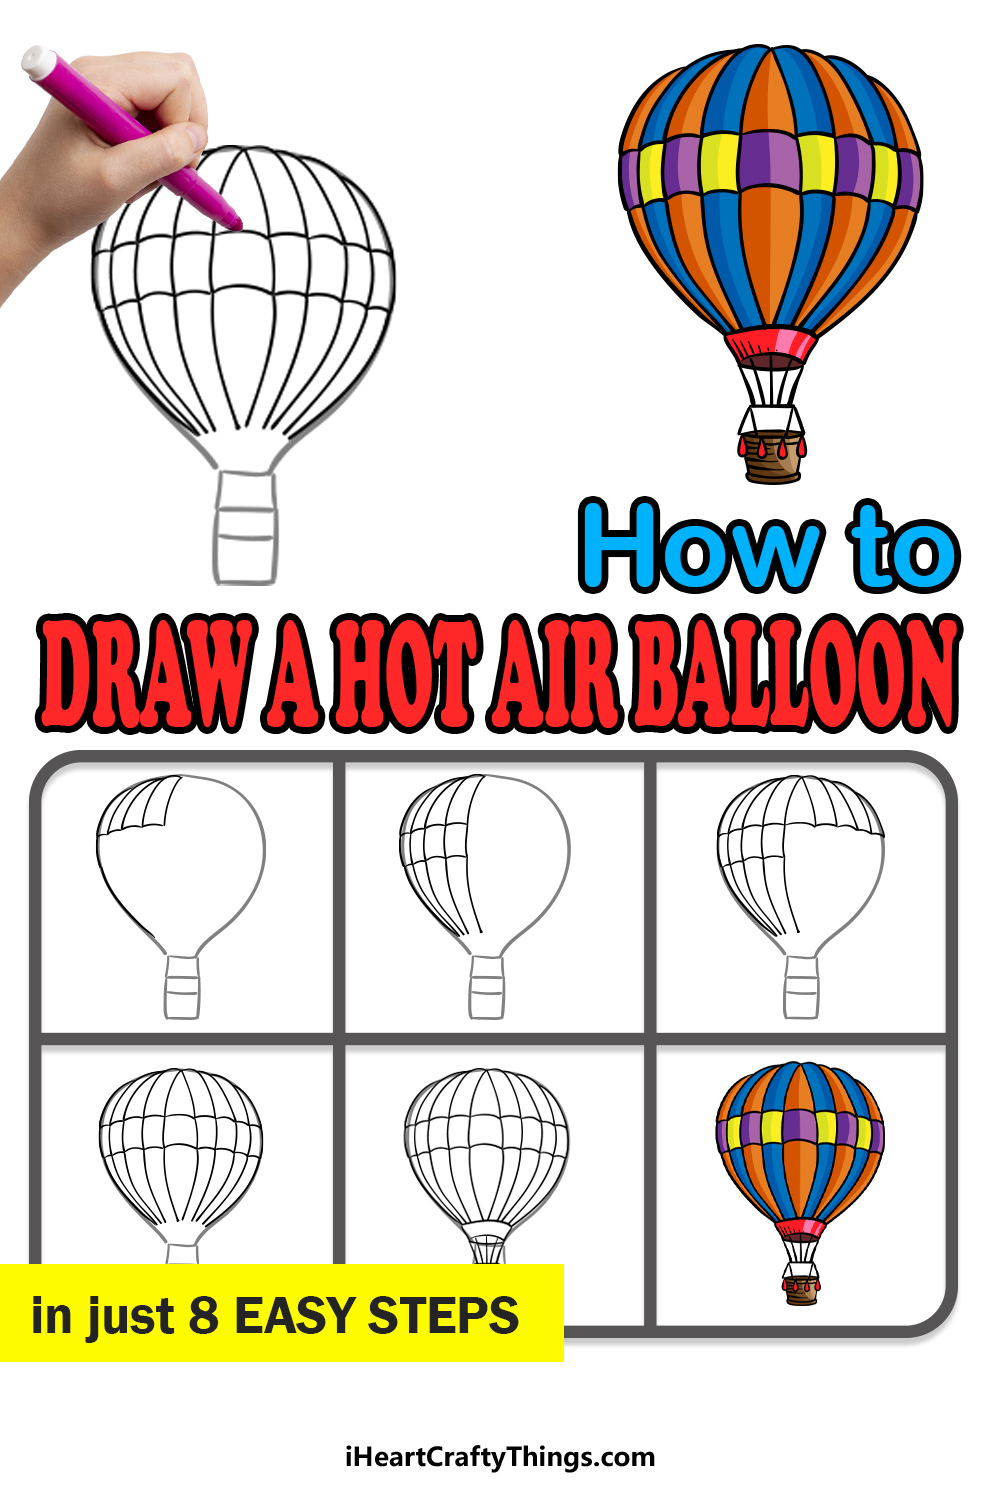 how to draw a hot air balloon in 8 easy steps